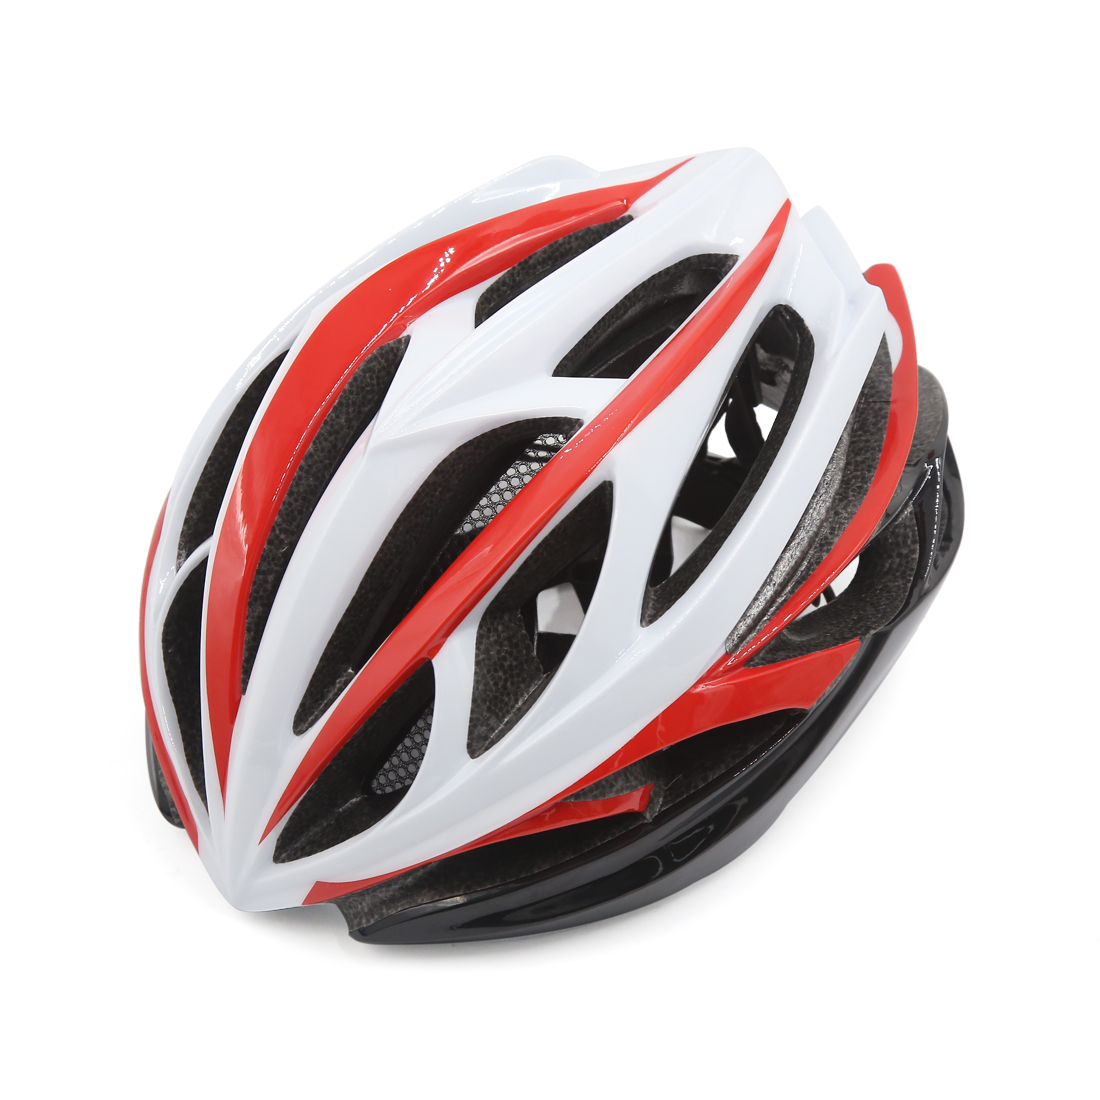 Unisex Adult MTB Mountain Bike Bicycle Cycling Shockproof Helmet Red White Black